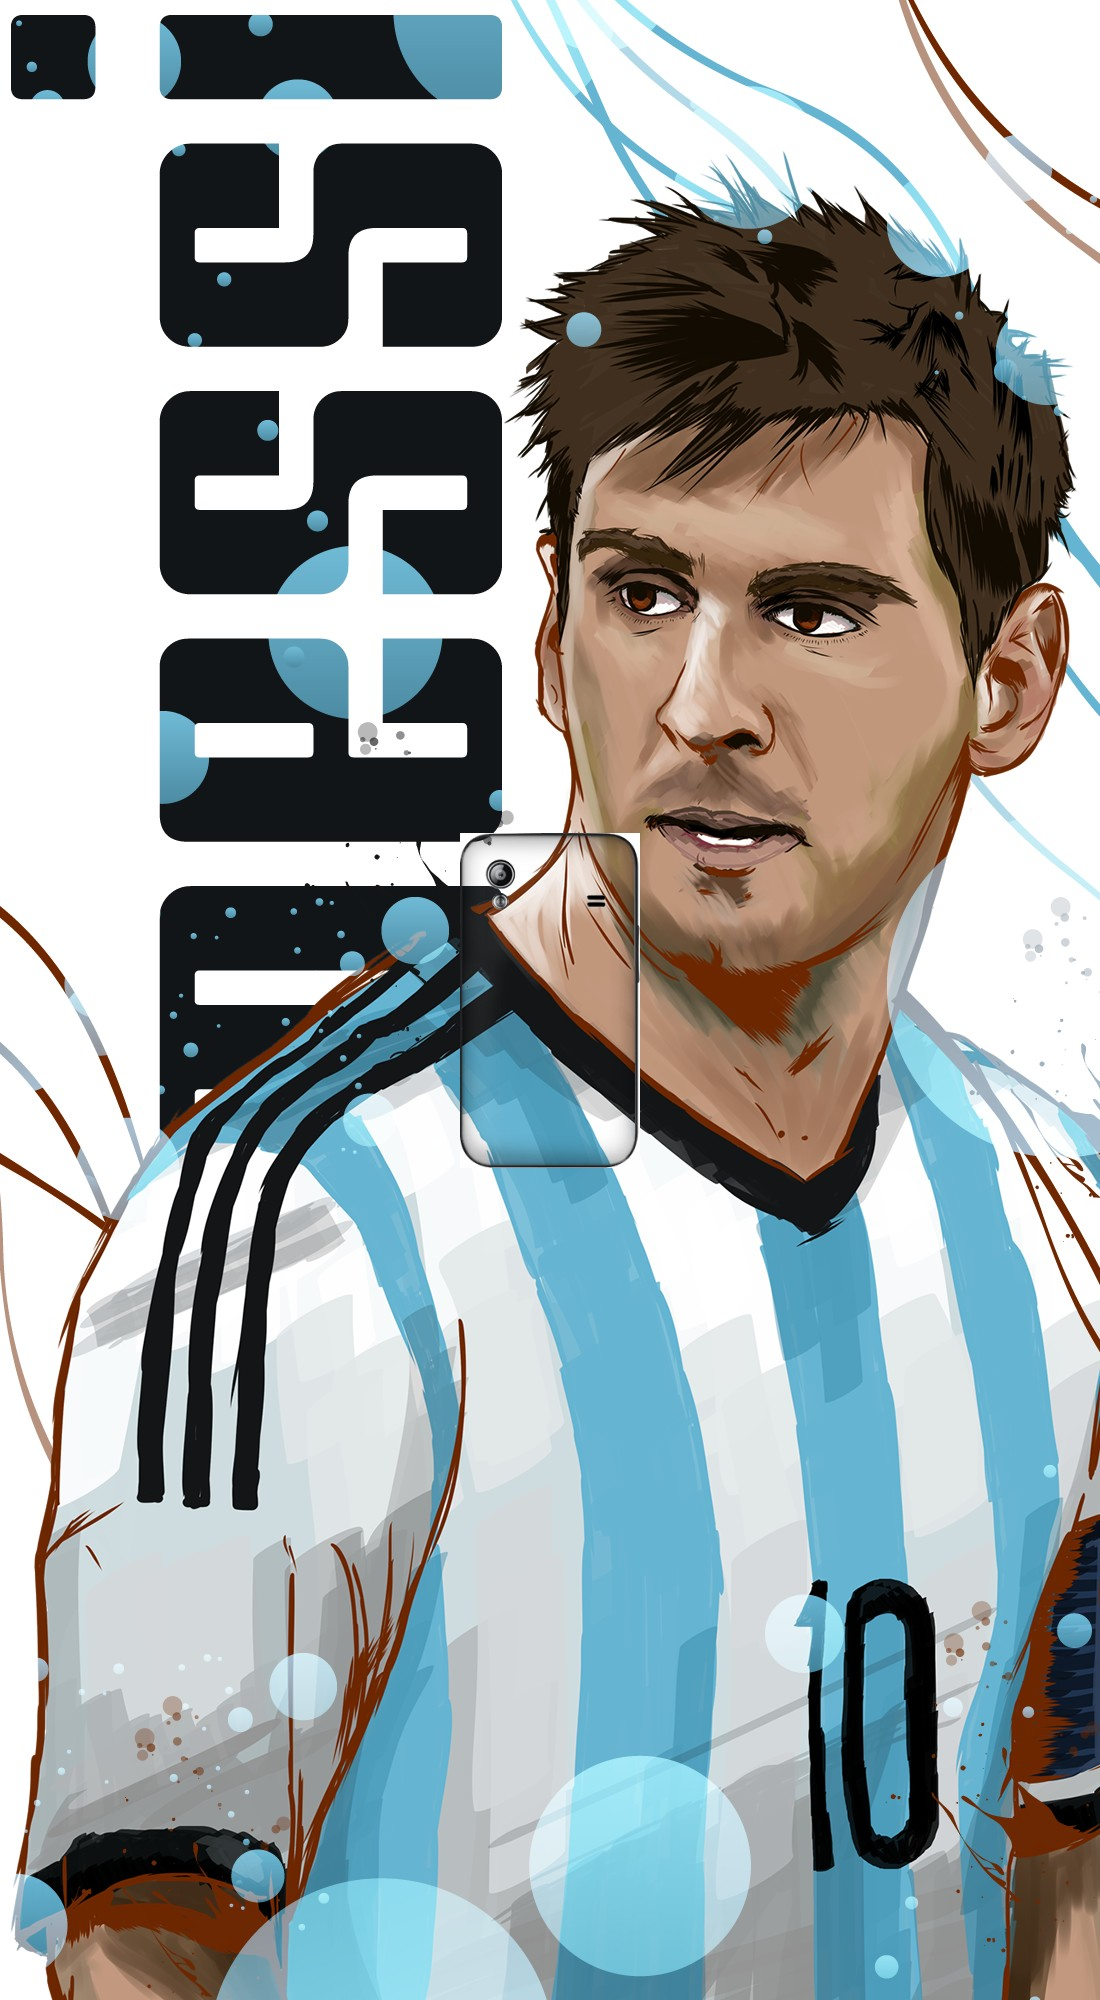 housse Football Legends: Lionel Messi - Argentina a clapet pour Samsung Galaxy Ace S5830